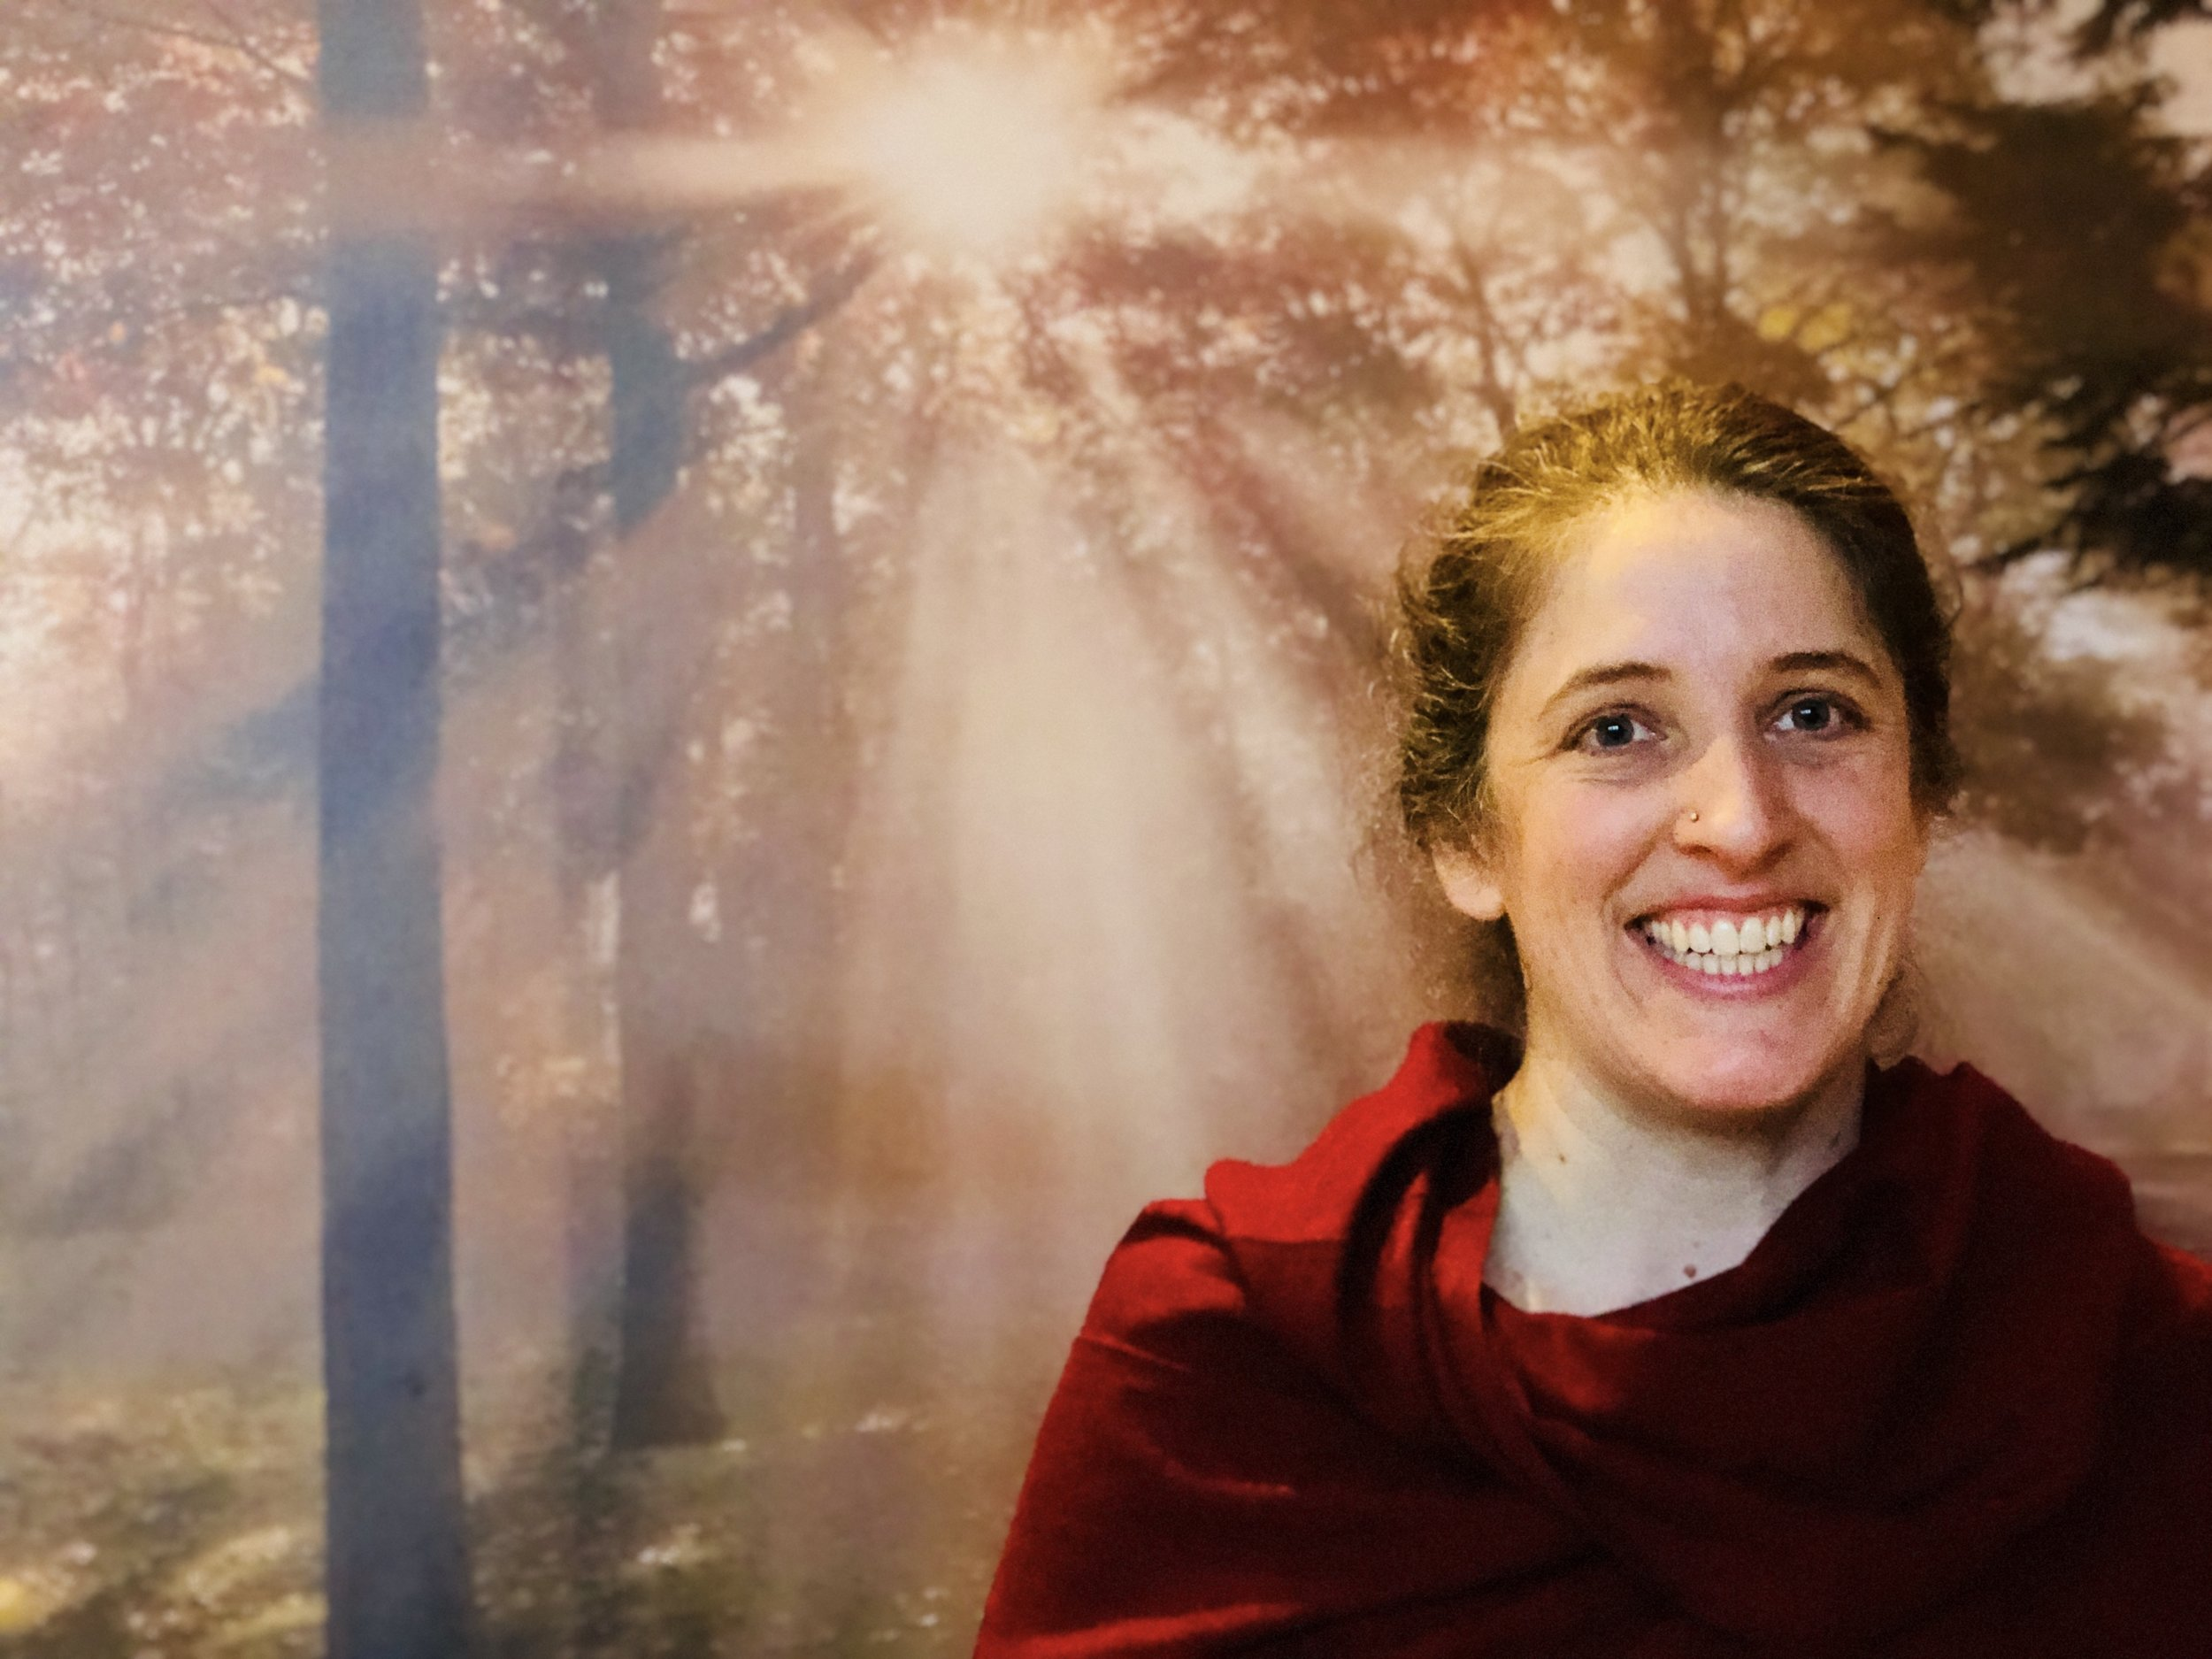 """In 2010,  Sarah Bish  became a disciple of  Chandra Om . Sarah says about what she has learned: """"I am changing, growing, and learning how to Love and Be Loved… to Be Receptive to Love and Grace."""" Sarah completed the 200 hour & 500 hour yoga teacher trainings (among others) at the NC School of Yoga, mostly under the instruction of her spiritual sisters, senior disciples of her Guru, Padma Om, and Lakshmi Om (who is now the Director of her spiritual home, the Shanti Niketan Ashram in Cary, NC).The Eco-Institute is blessed to welcome Sarah as our newest Staff Member, and we've been enjoying practicing lighthearted, reverent, powerful yoga with her guidance! To learn more about Sarah Waggoner Bish,  check out her website ."""